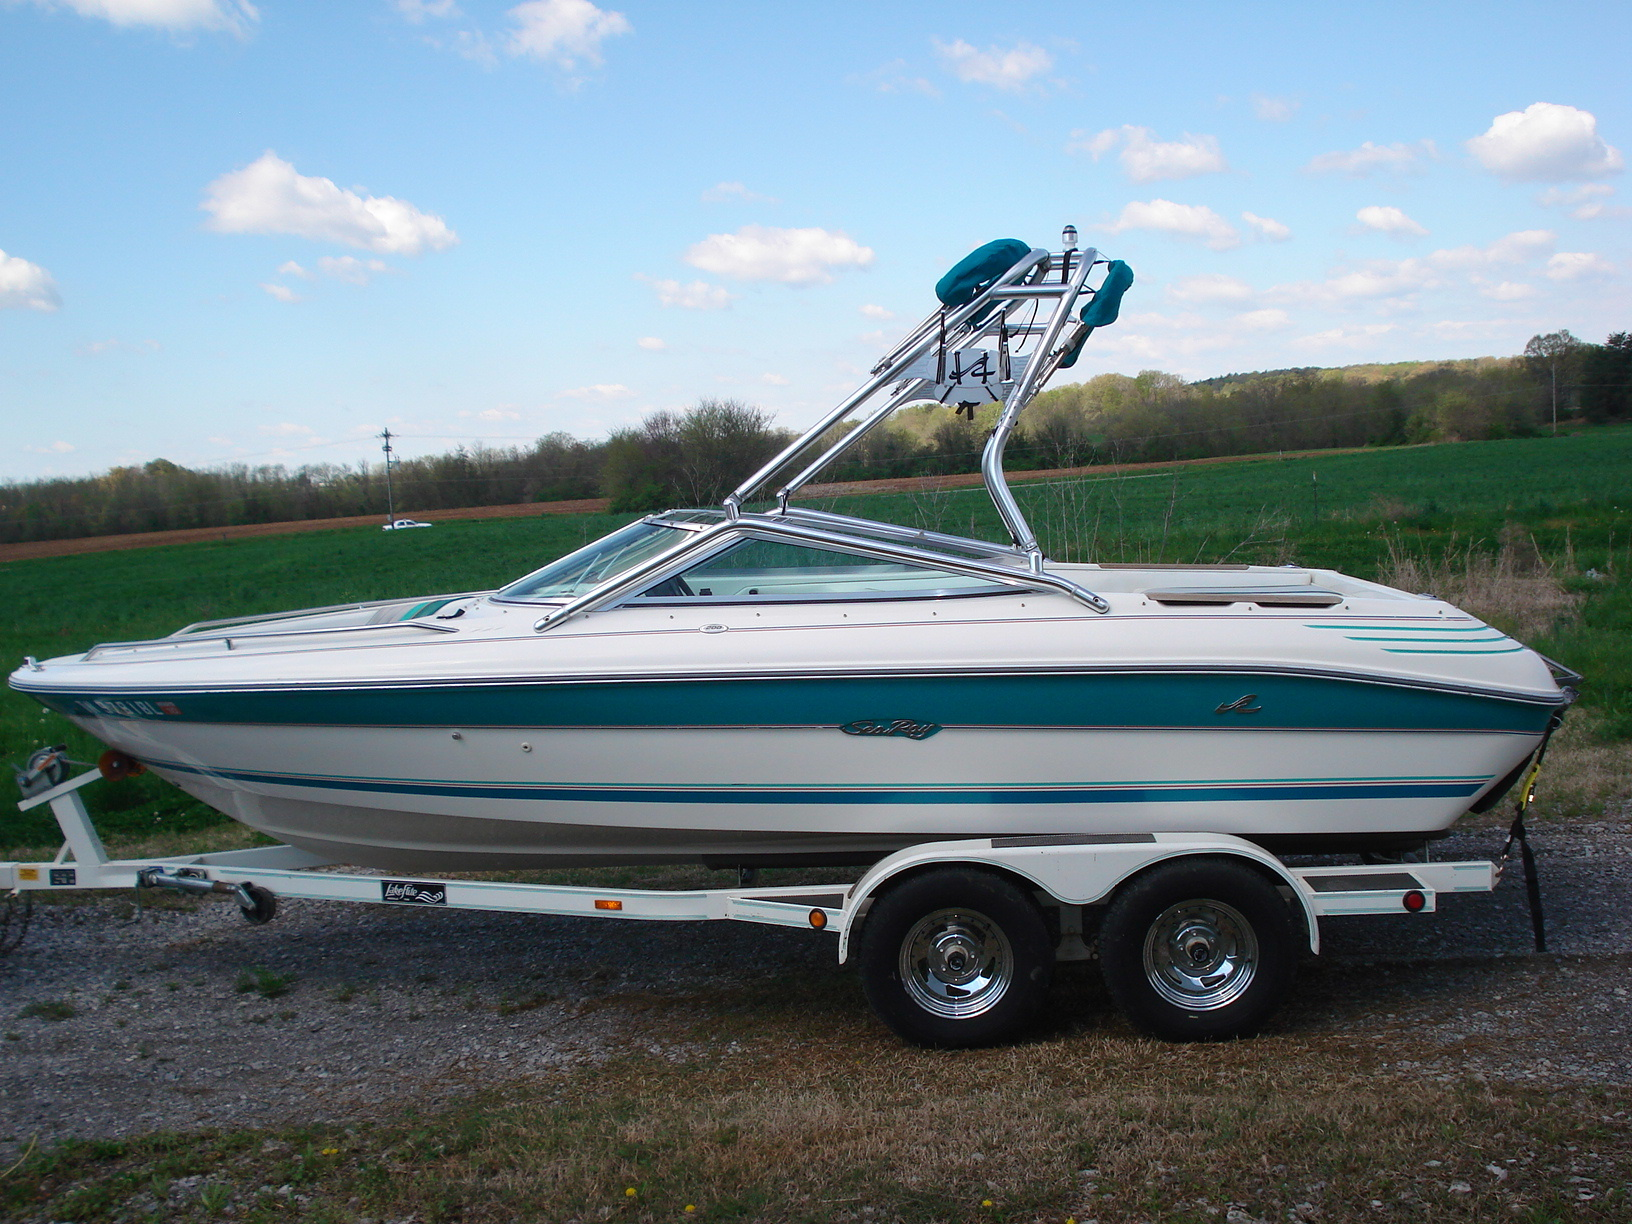 main image of 92 - 93 sea ray 200 with new dimension wakeboard tower